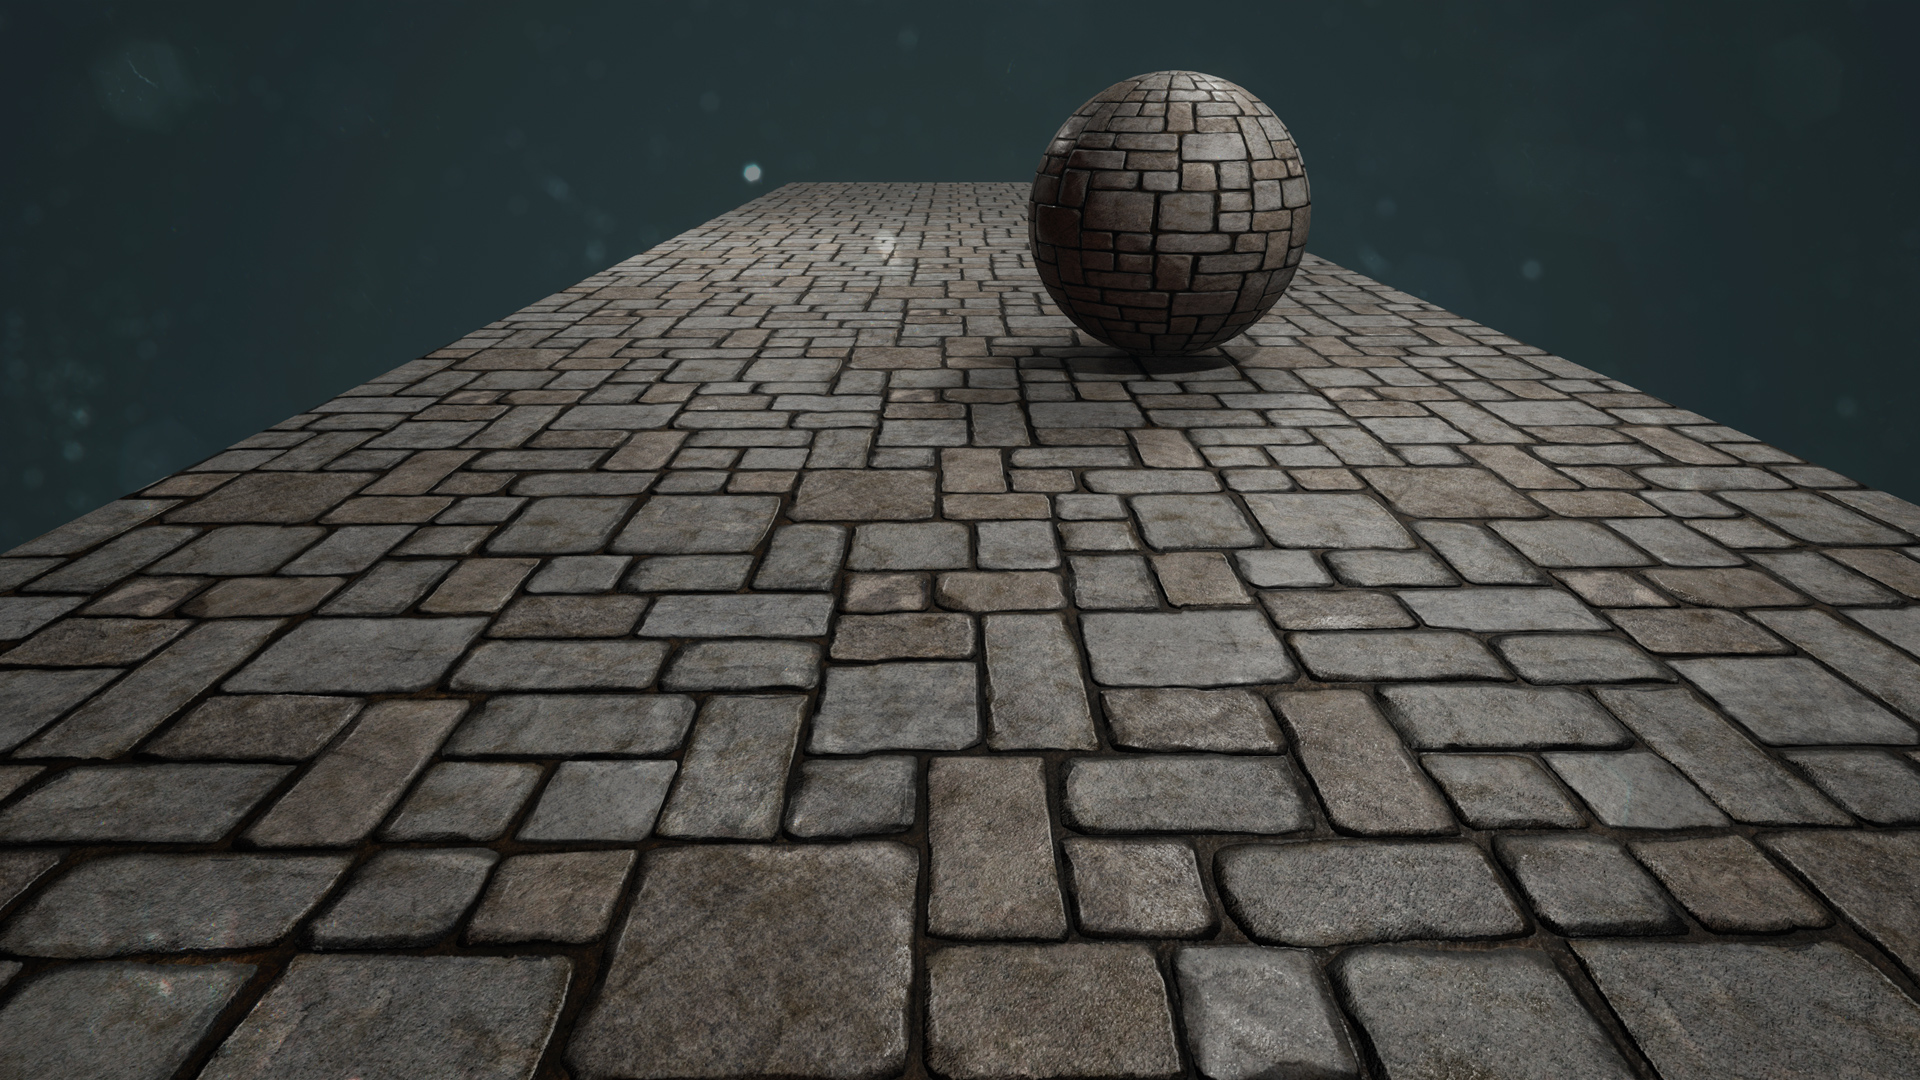 This is the first in what I plan to be a short series of hand sculpted tiling ground & road textures.  It was sculpted in ZBrush, the physically based textures were created in Photoshop, and it was rendered in Unreal Engine 4.